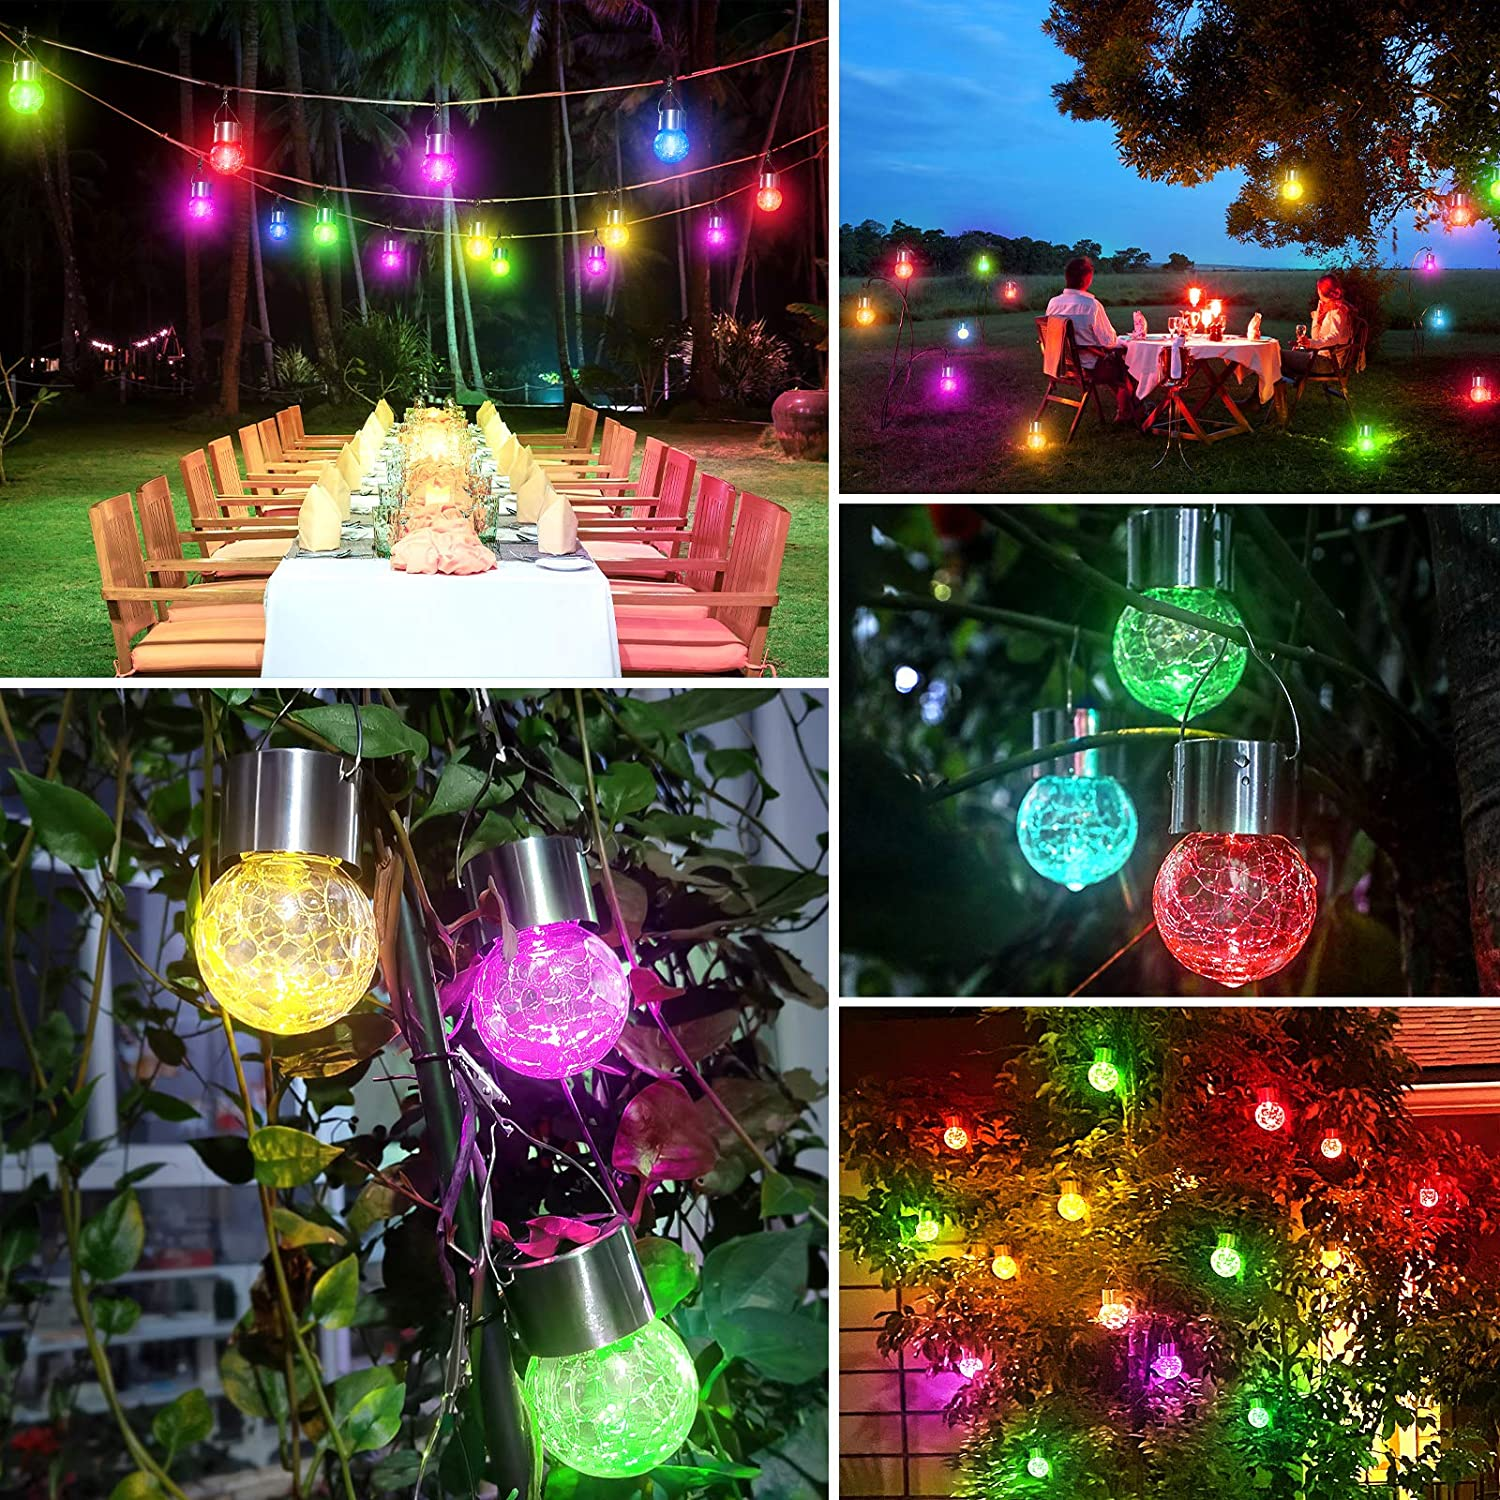 D2 12Pack Hanging Outdoor Solar Lights Cracked Glass LED Ball Lights Tree Solar Light Garden Yard Patio Fence Holiday Lamp Gift